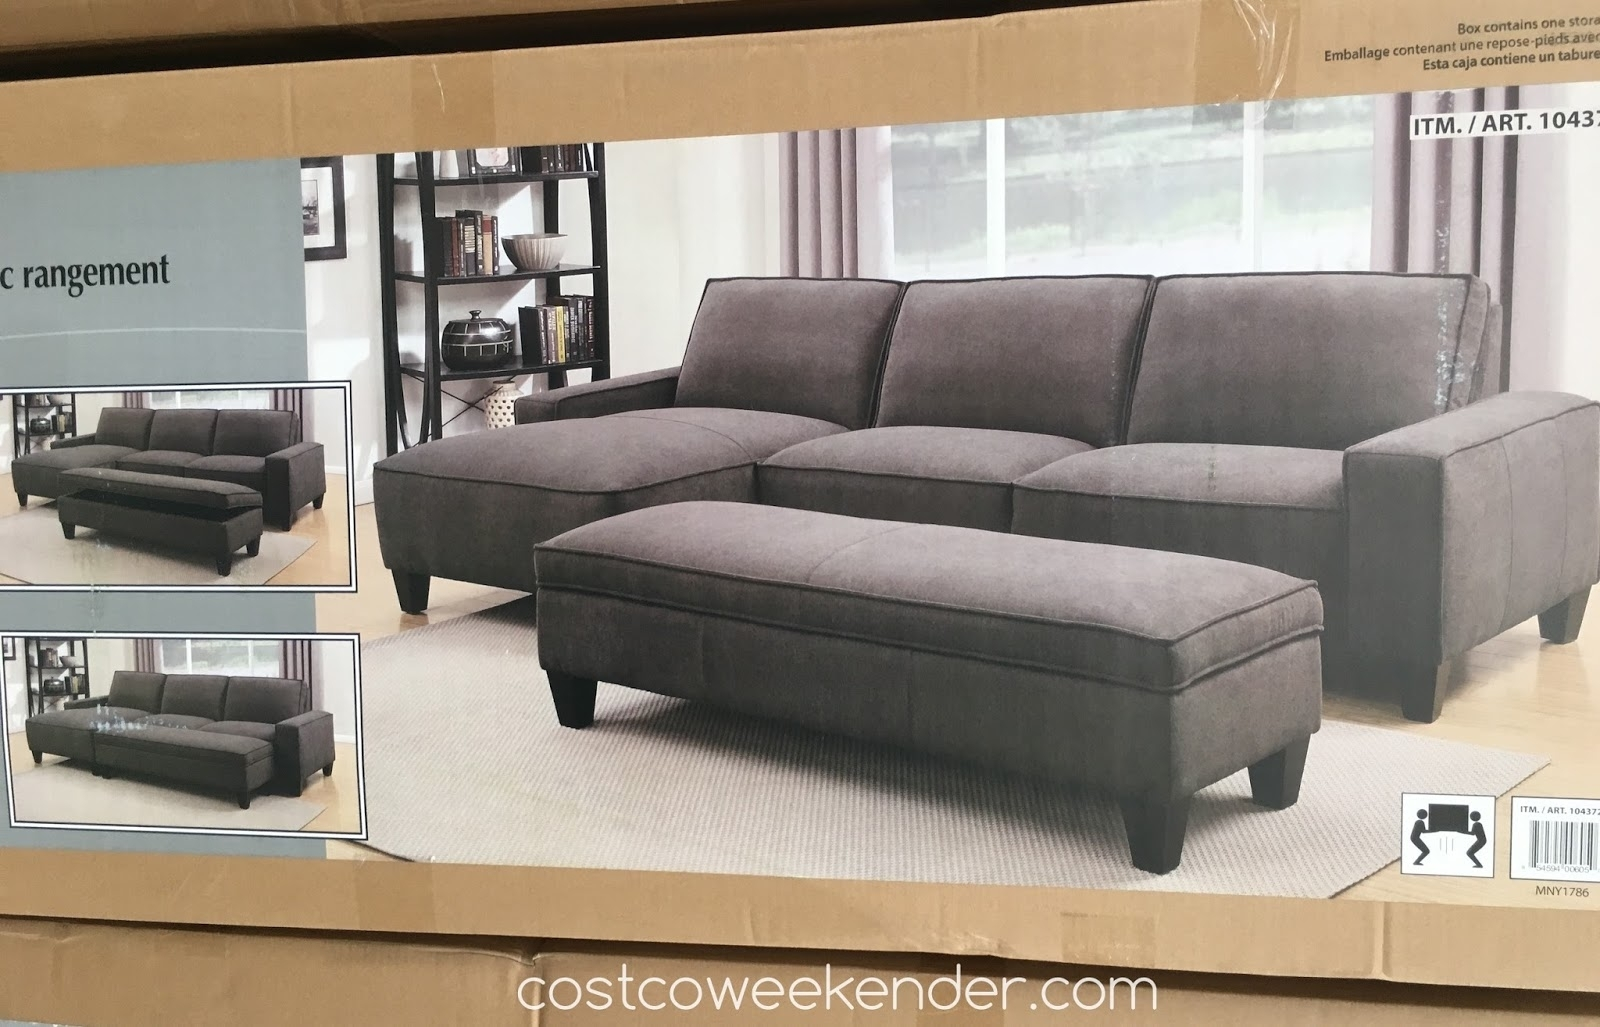 Sectional Sofa Design: Sectional Sofa With Chaise Costco Ikea regarding Sectional Sofas With Chaise And Ottoman (Image 14 of 15)